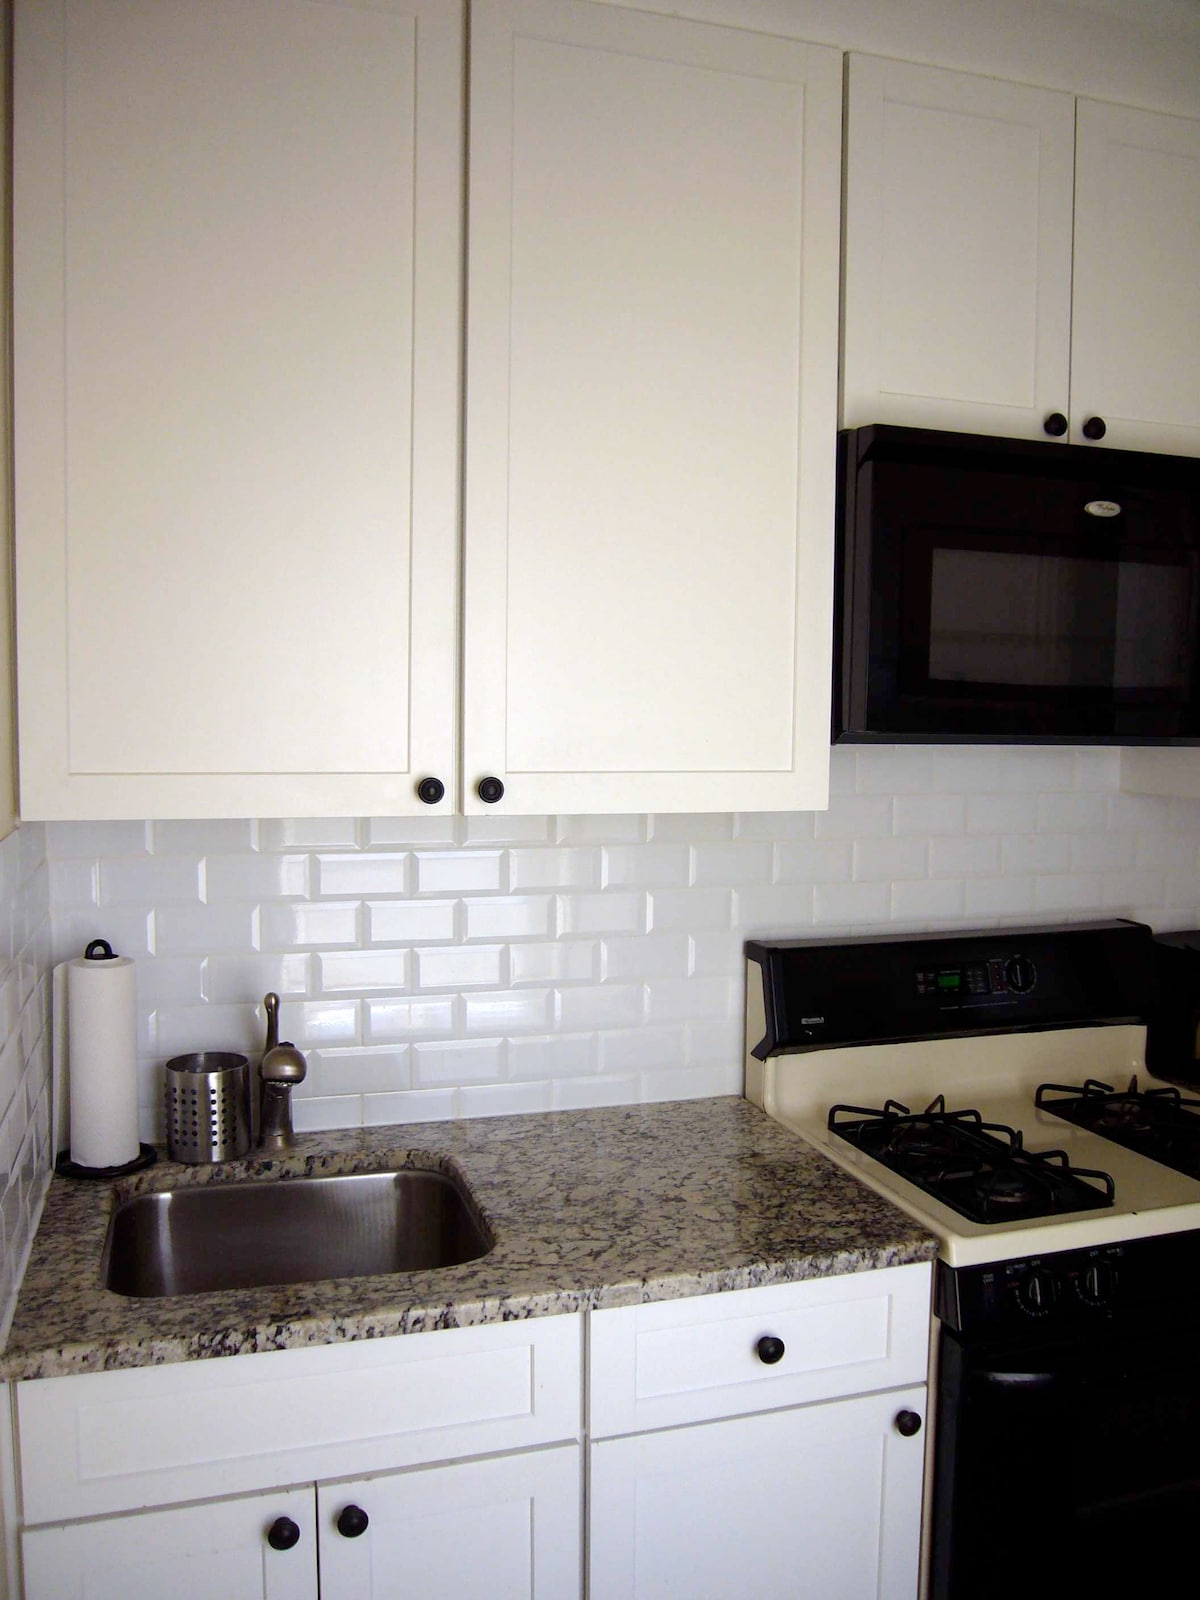 Granite counter top and subway backsplash